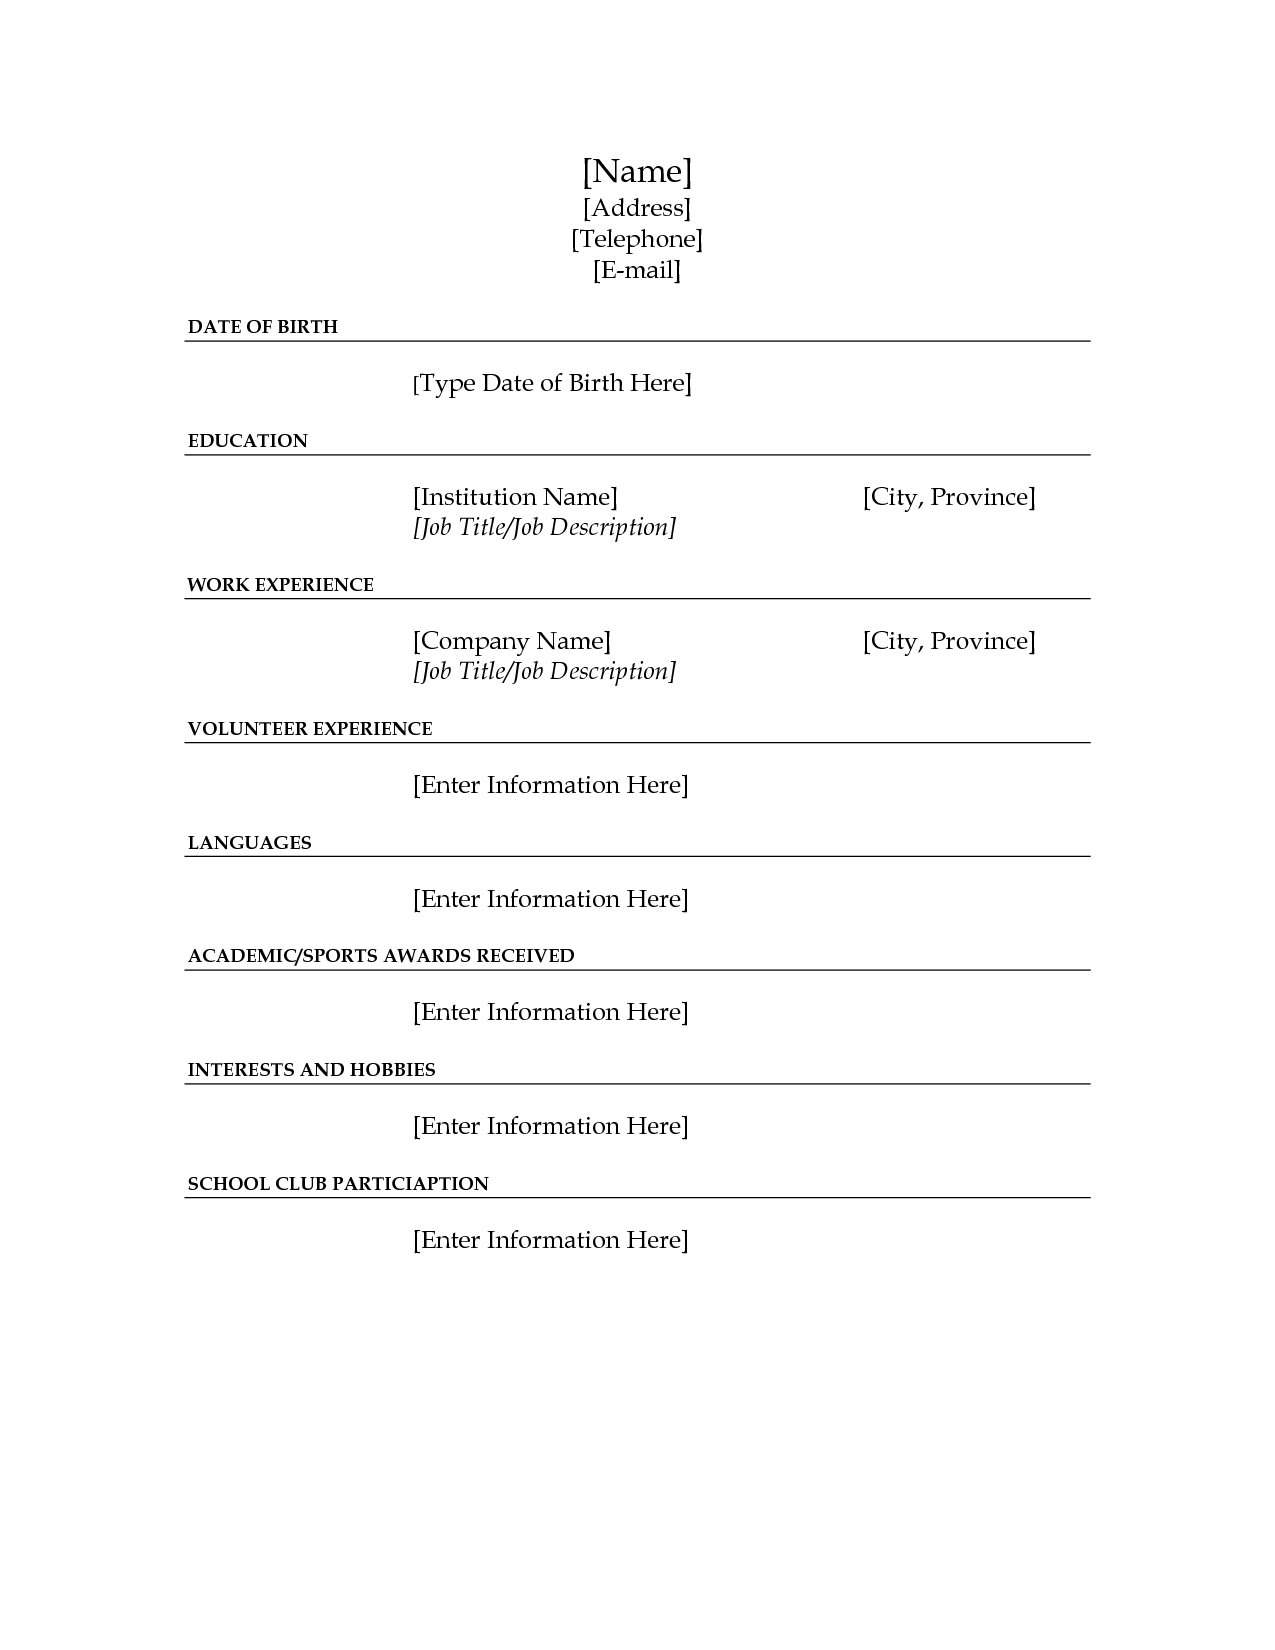 Free Online Resume Templates Printable And Builder For Template Maker App  Fill In Resume Online Free